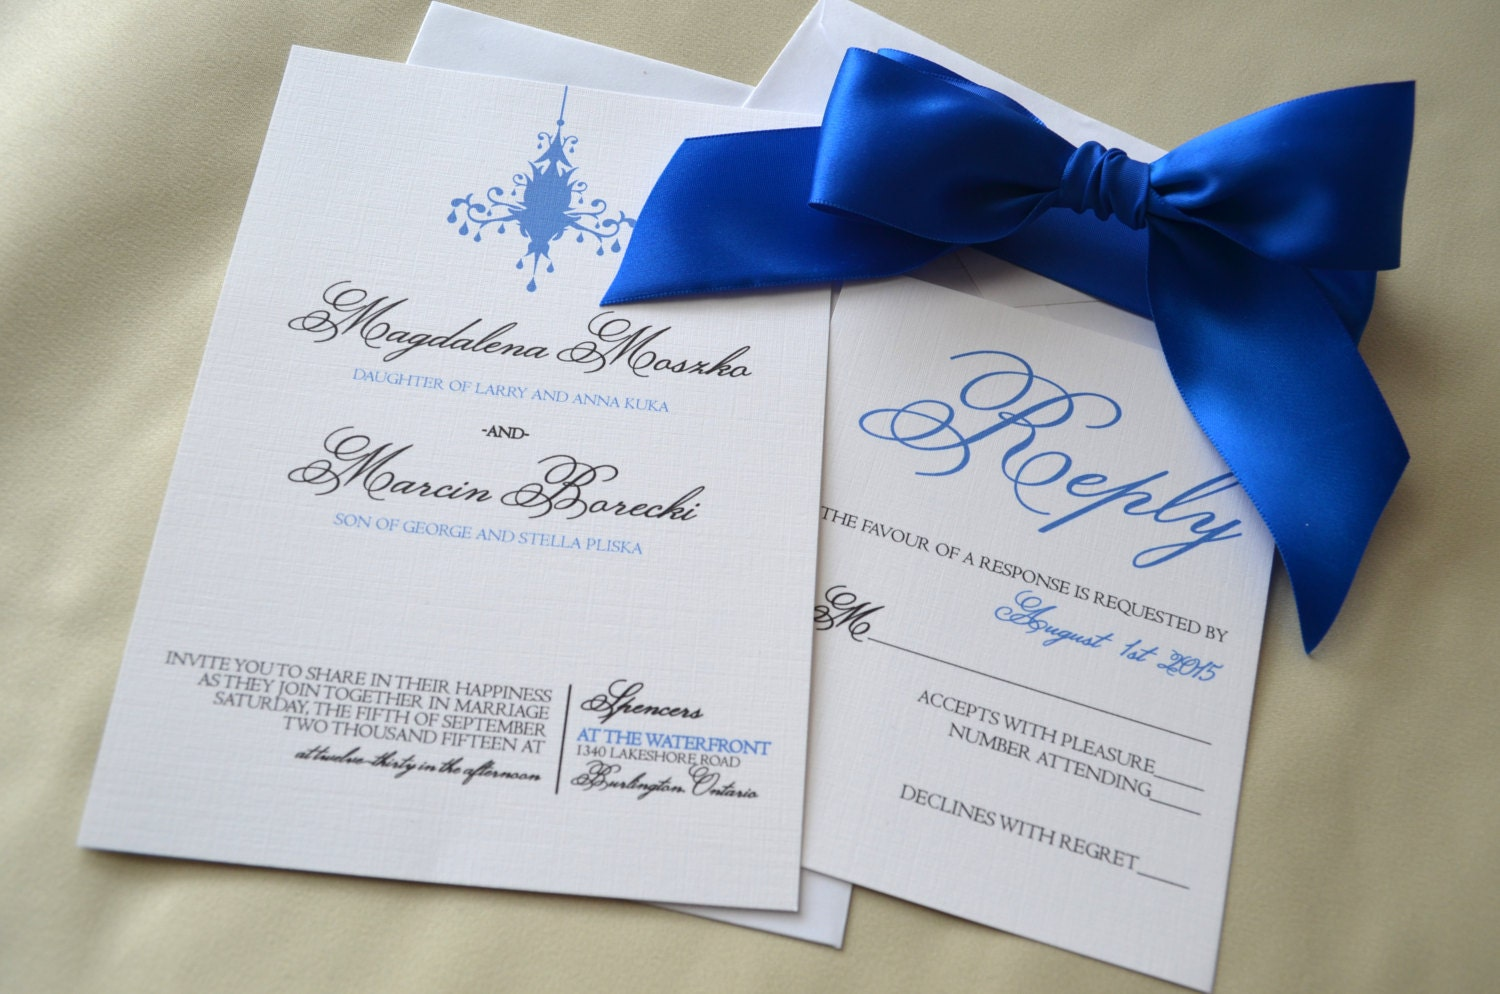 Royal Blue Wedding Invitation Cards: Royal Blue Wedding Invitation White And Royal Blue